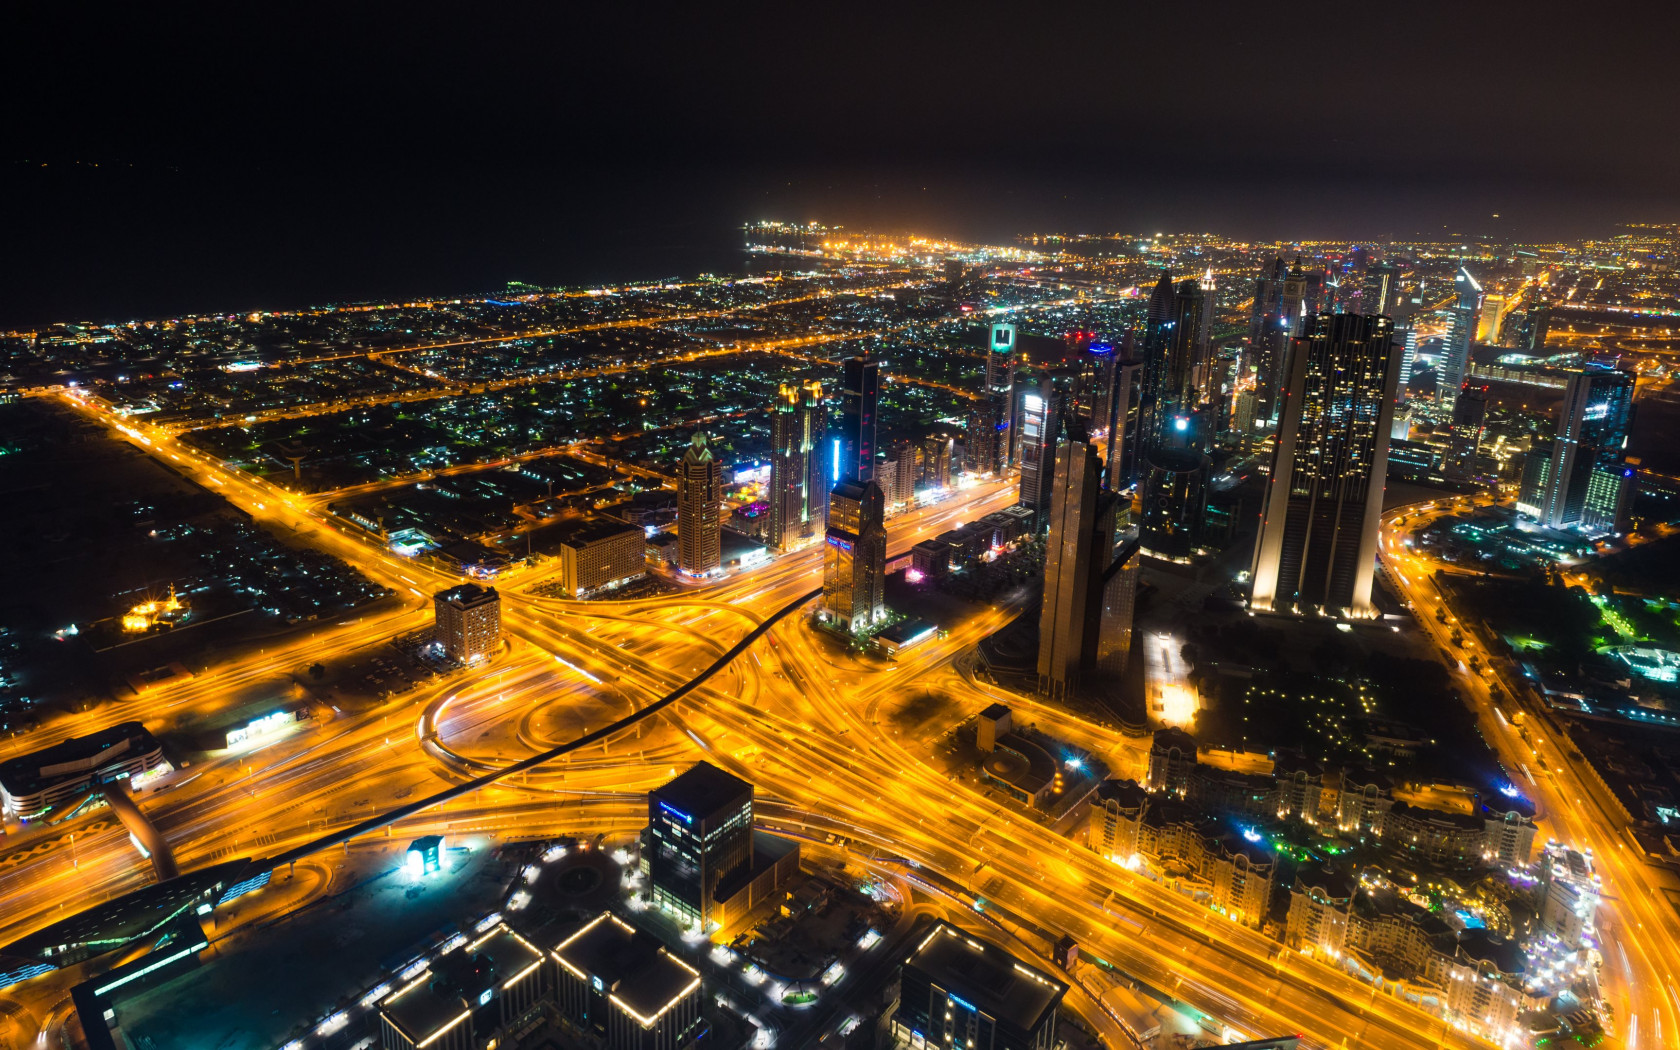 Dubai landscape by night | 1680x1050 wallpaper